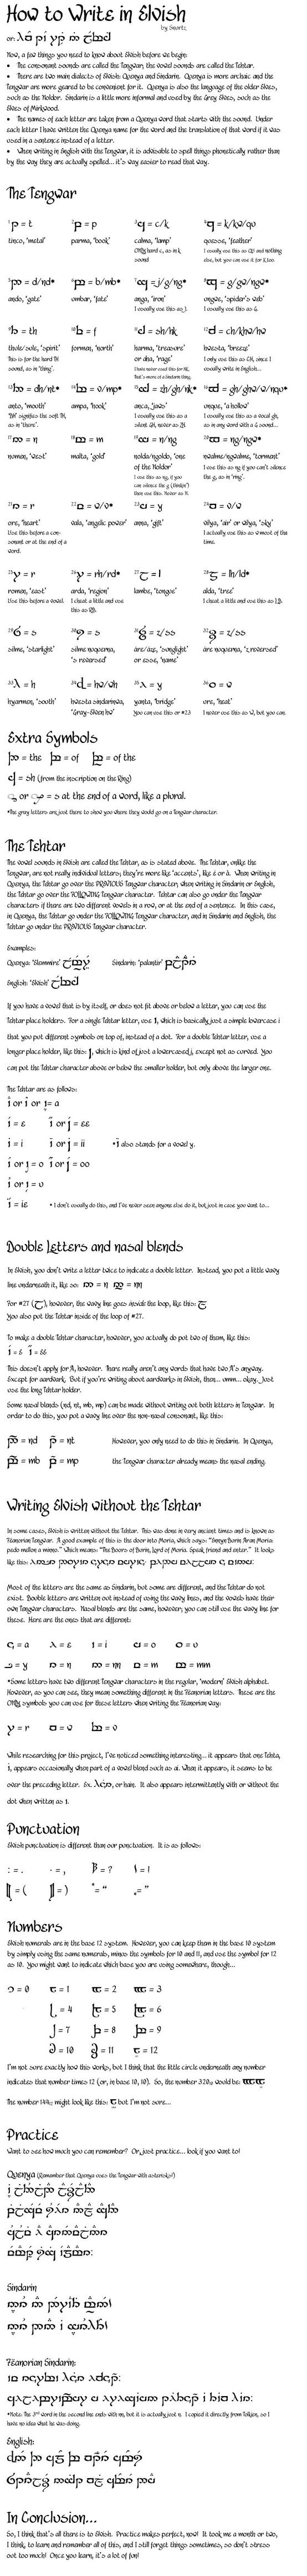 How to write in elvish.